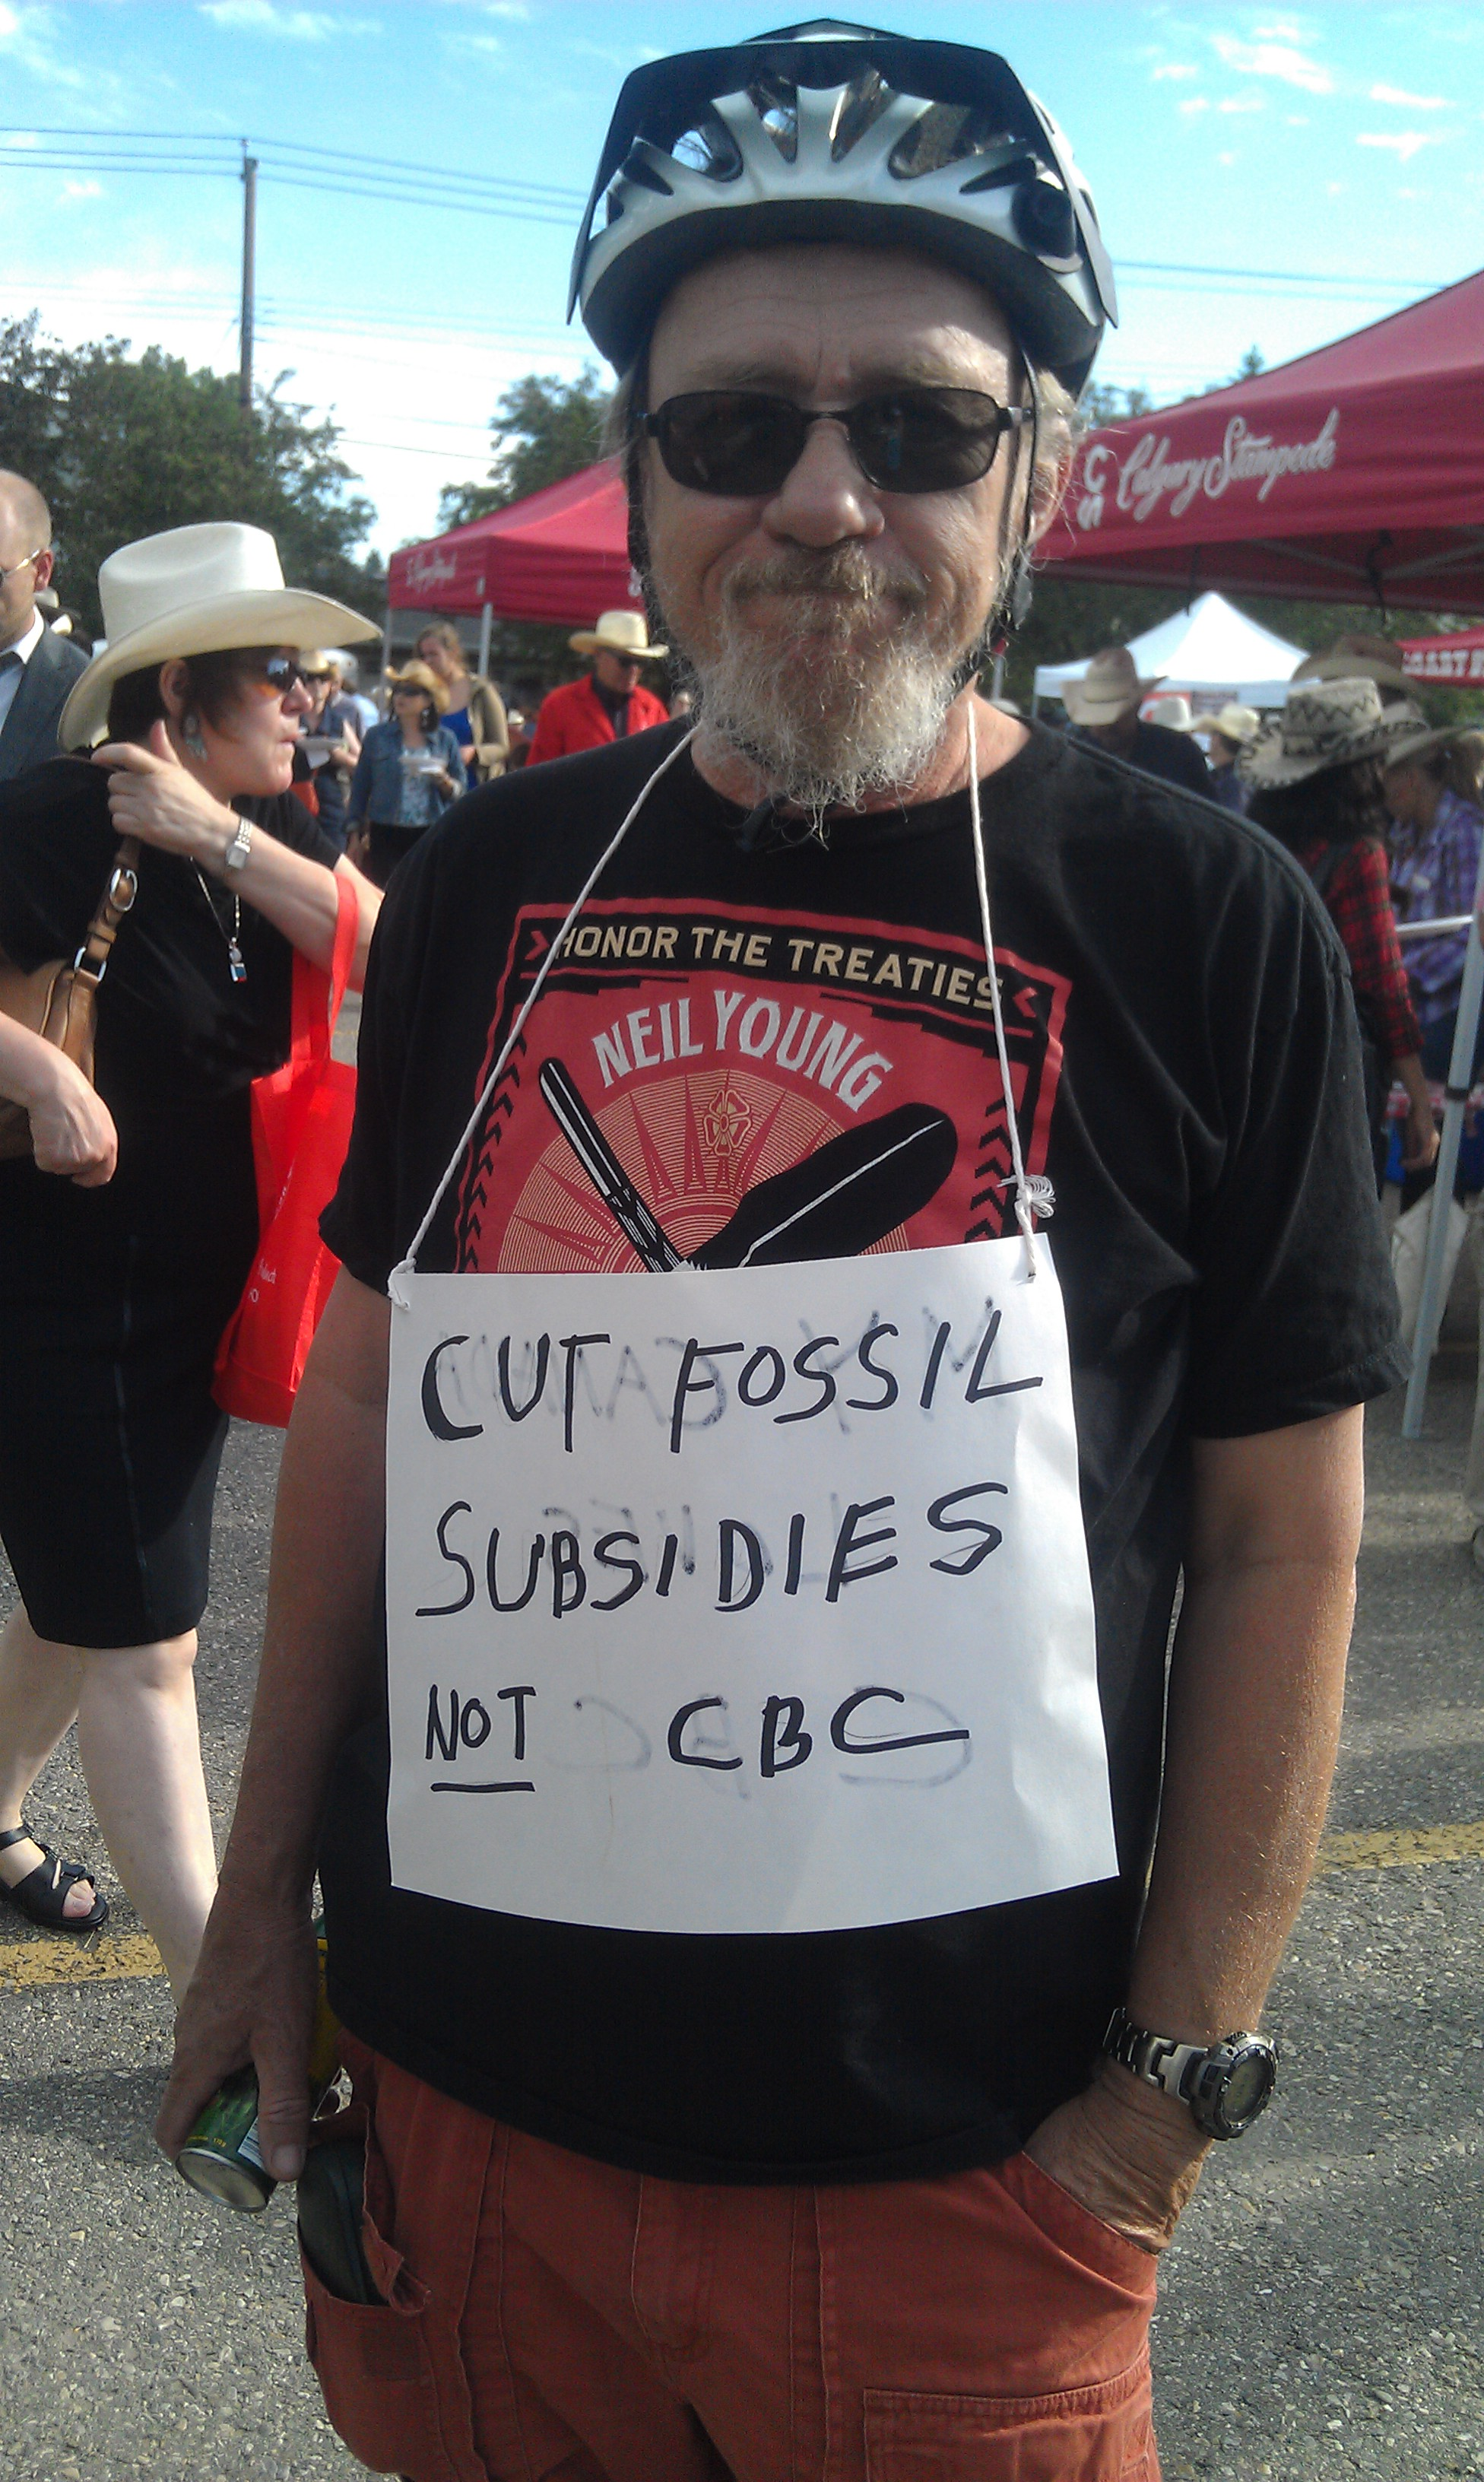 The dude does not abide cuts to the CBC.